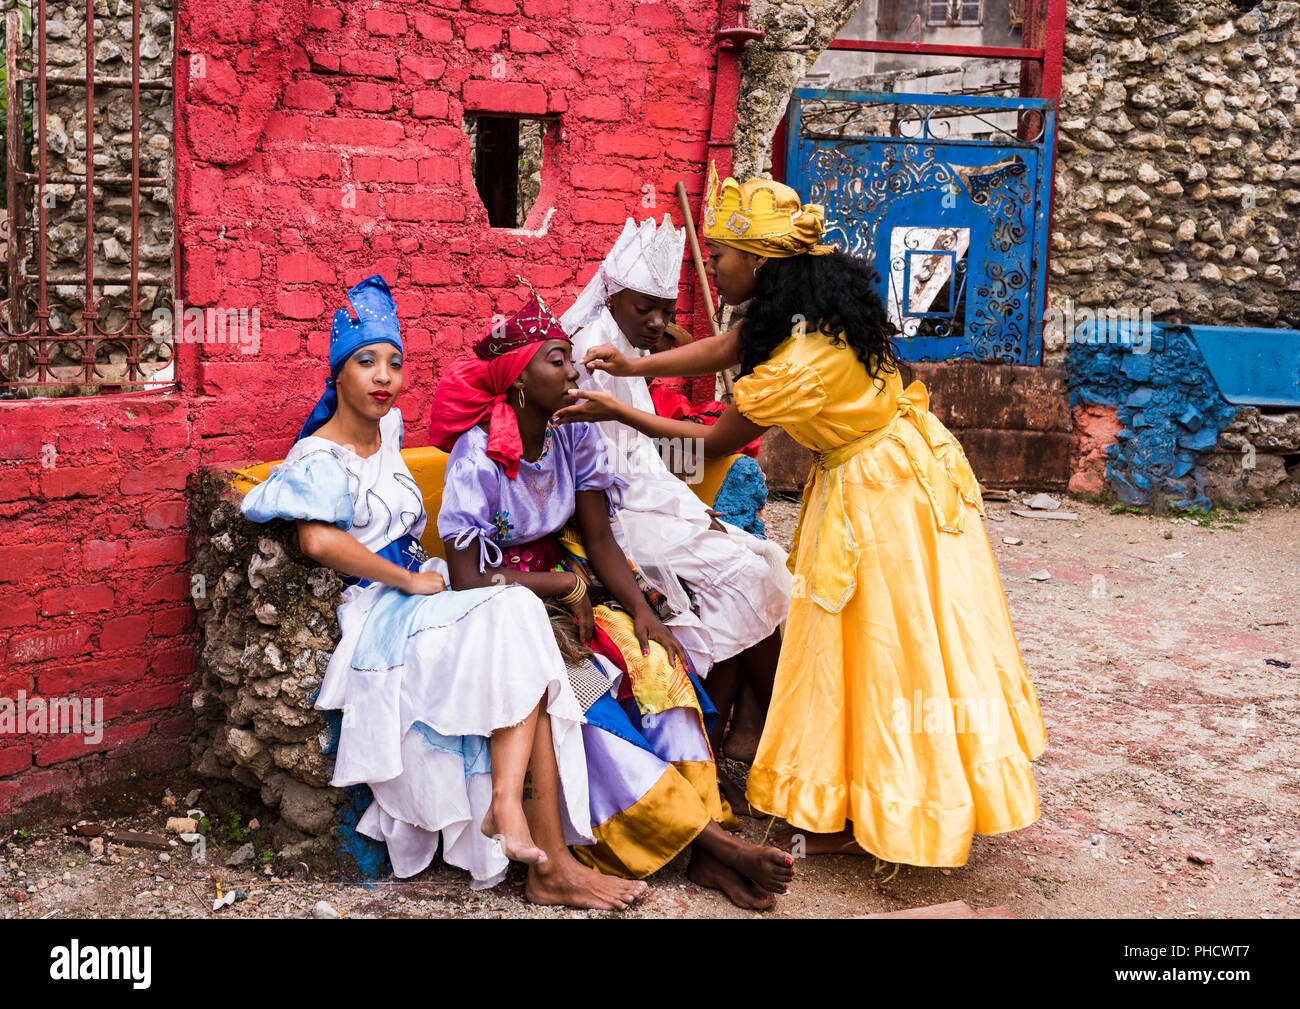 Havana, Cuba / March 20, 2016: Four Cuban women prepping before Santeria performance at Hamel Alley. - Stock Image